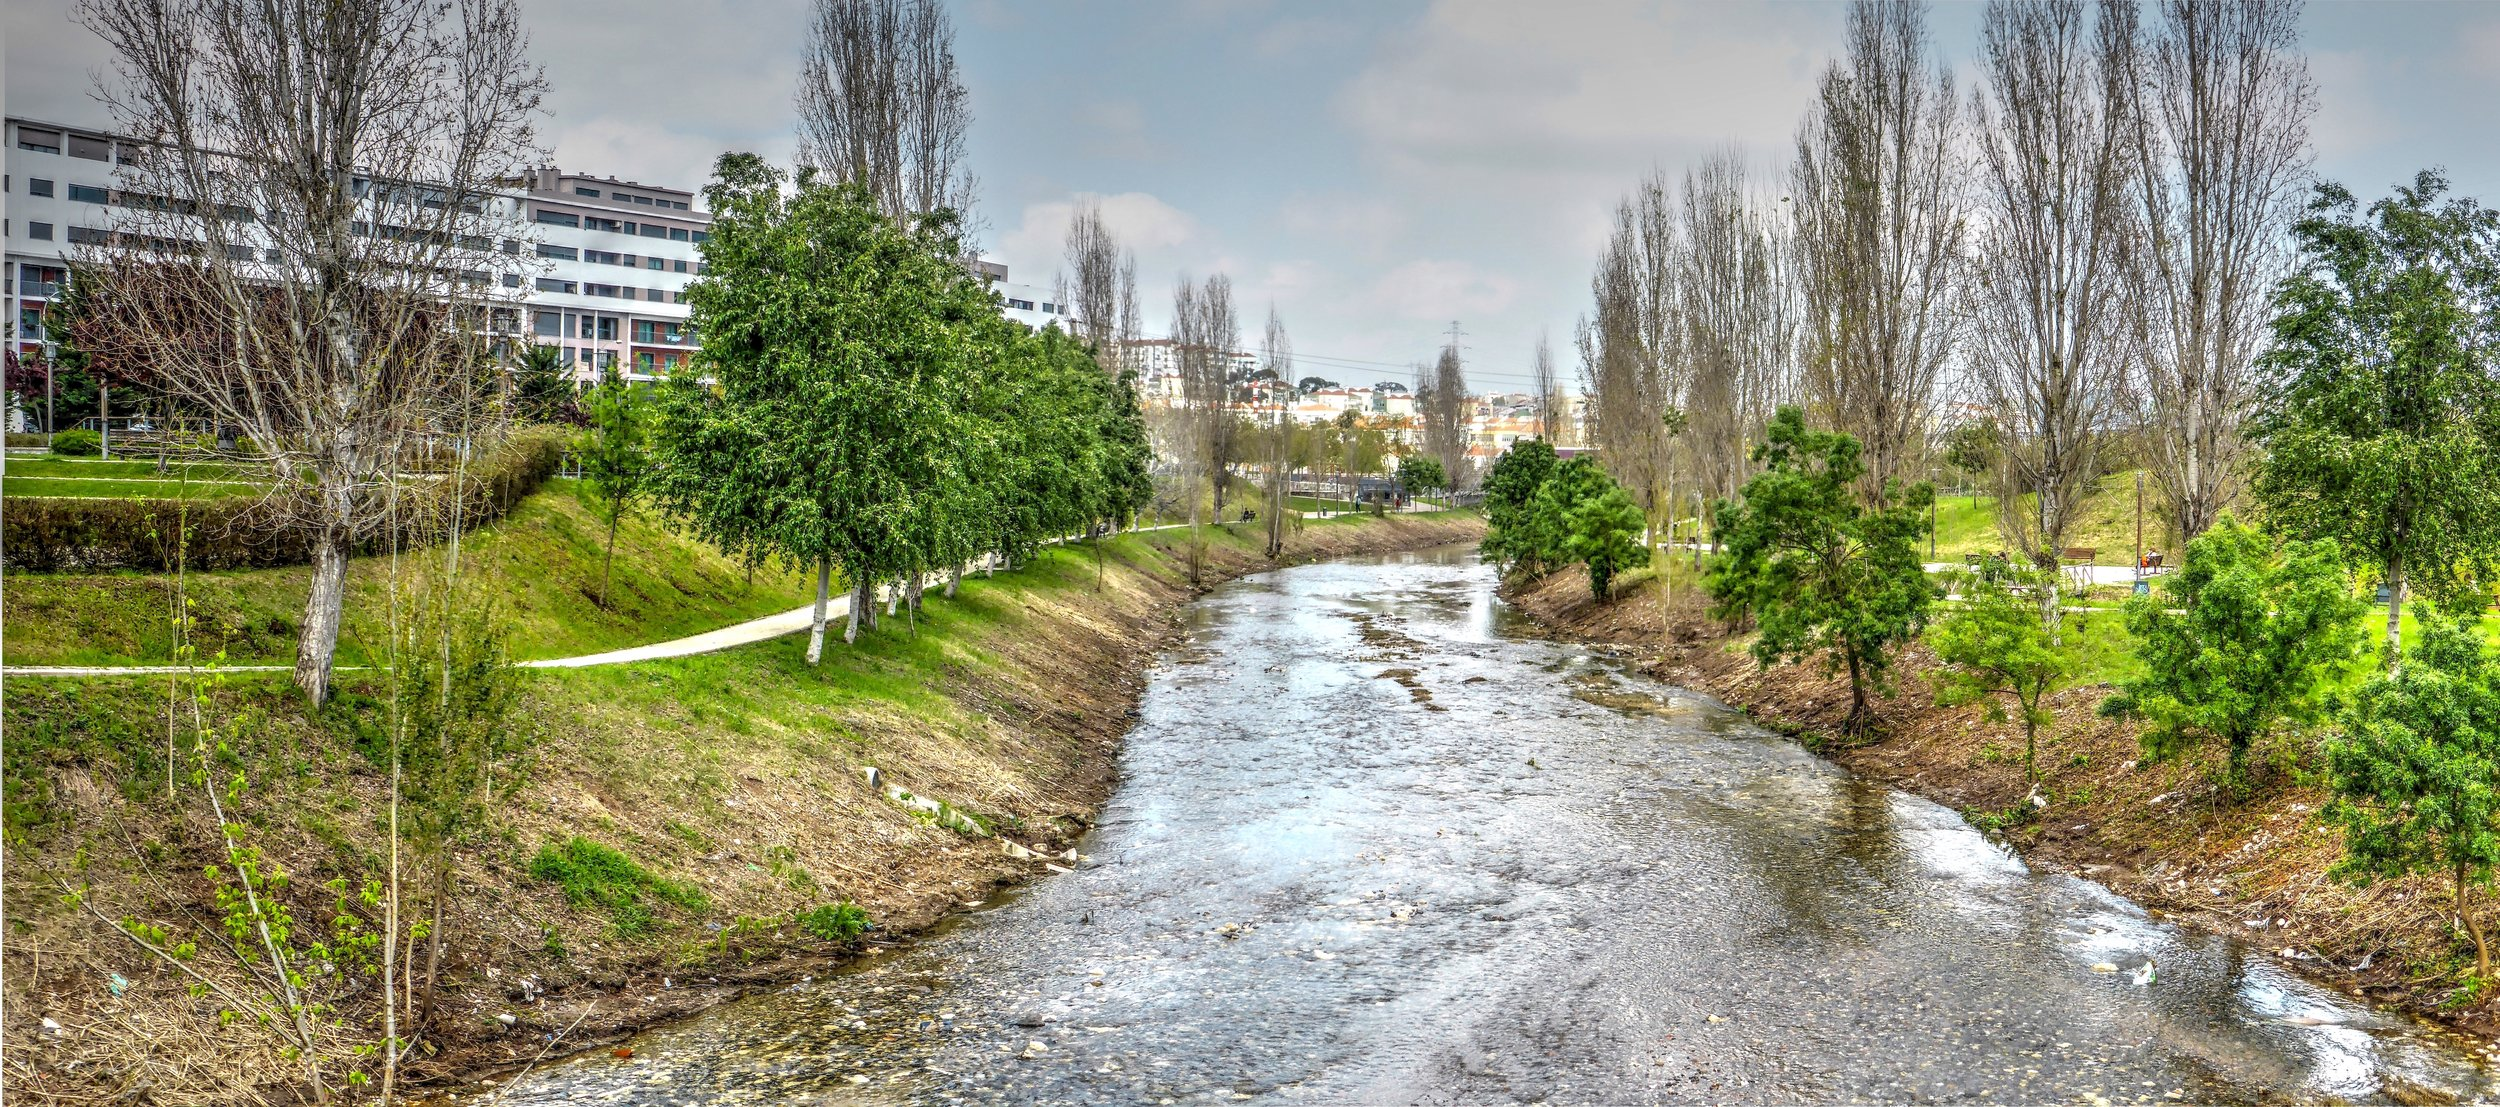 Riparian buffers protect water quality in streams and make them more desirable places to recreate and enjoy.